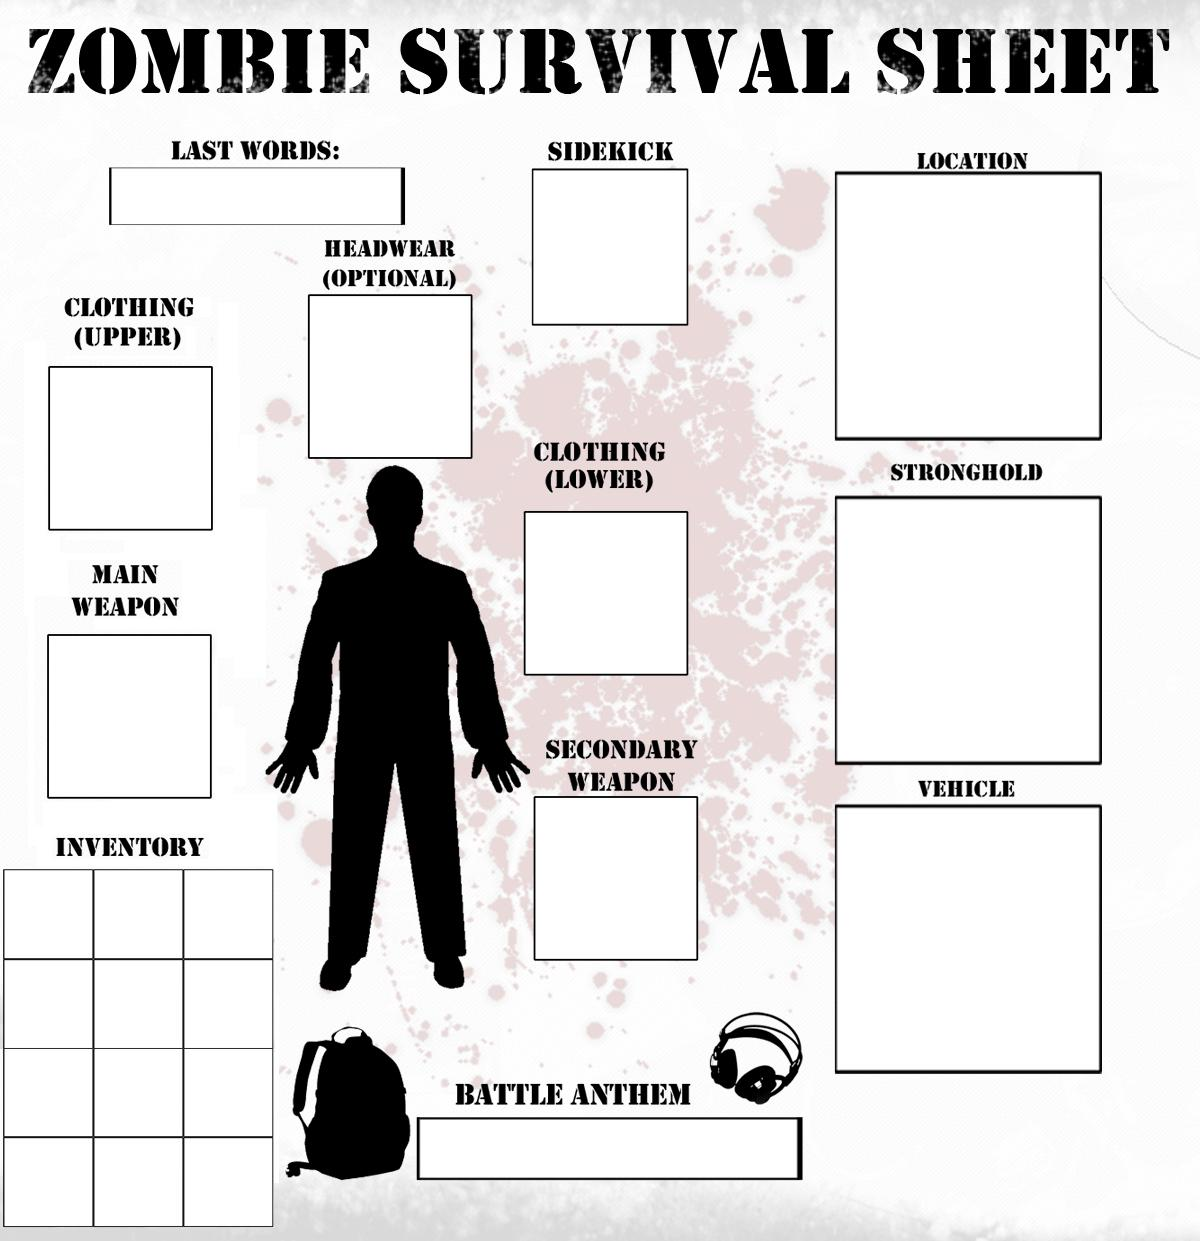 /dateien/uh61294,1268911386,Zombie Survival Sheet Template by MrAlf